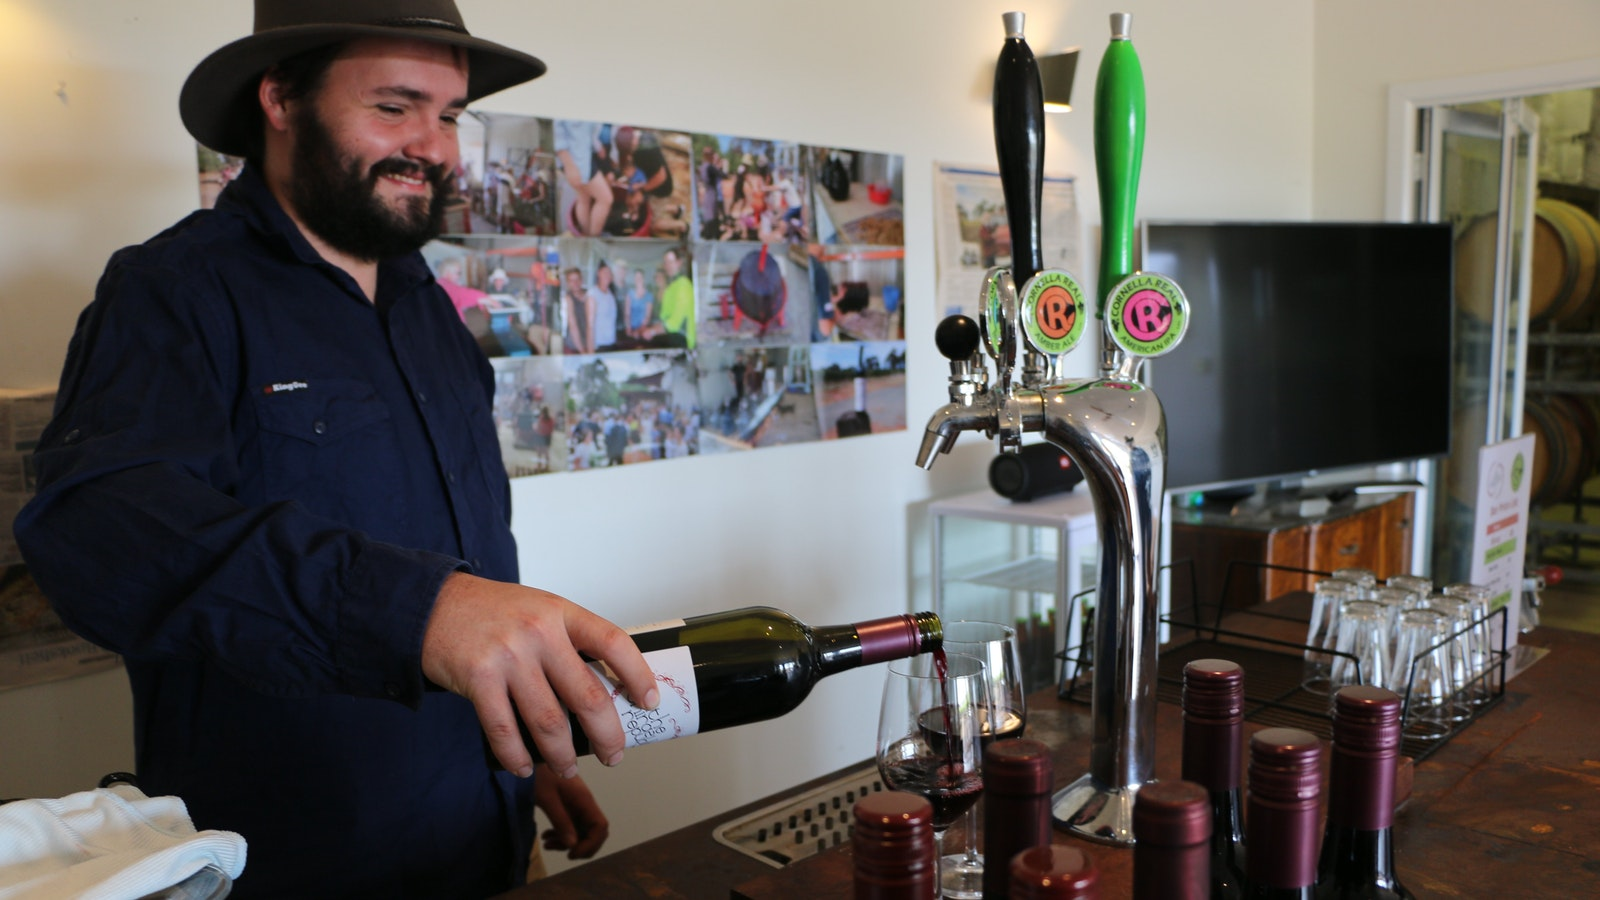 Choose from a vertical tasting of our wine, some cleansing ales - or both!